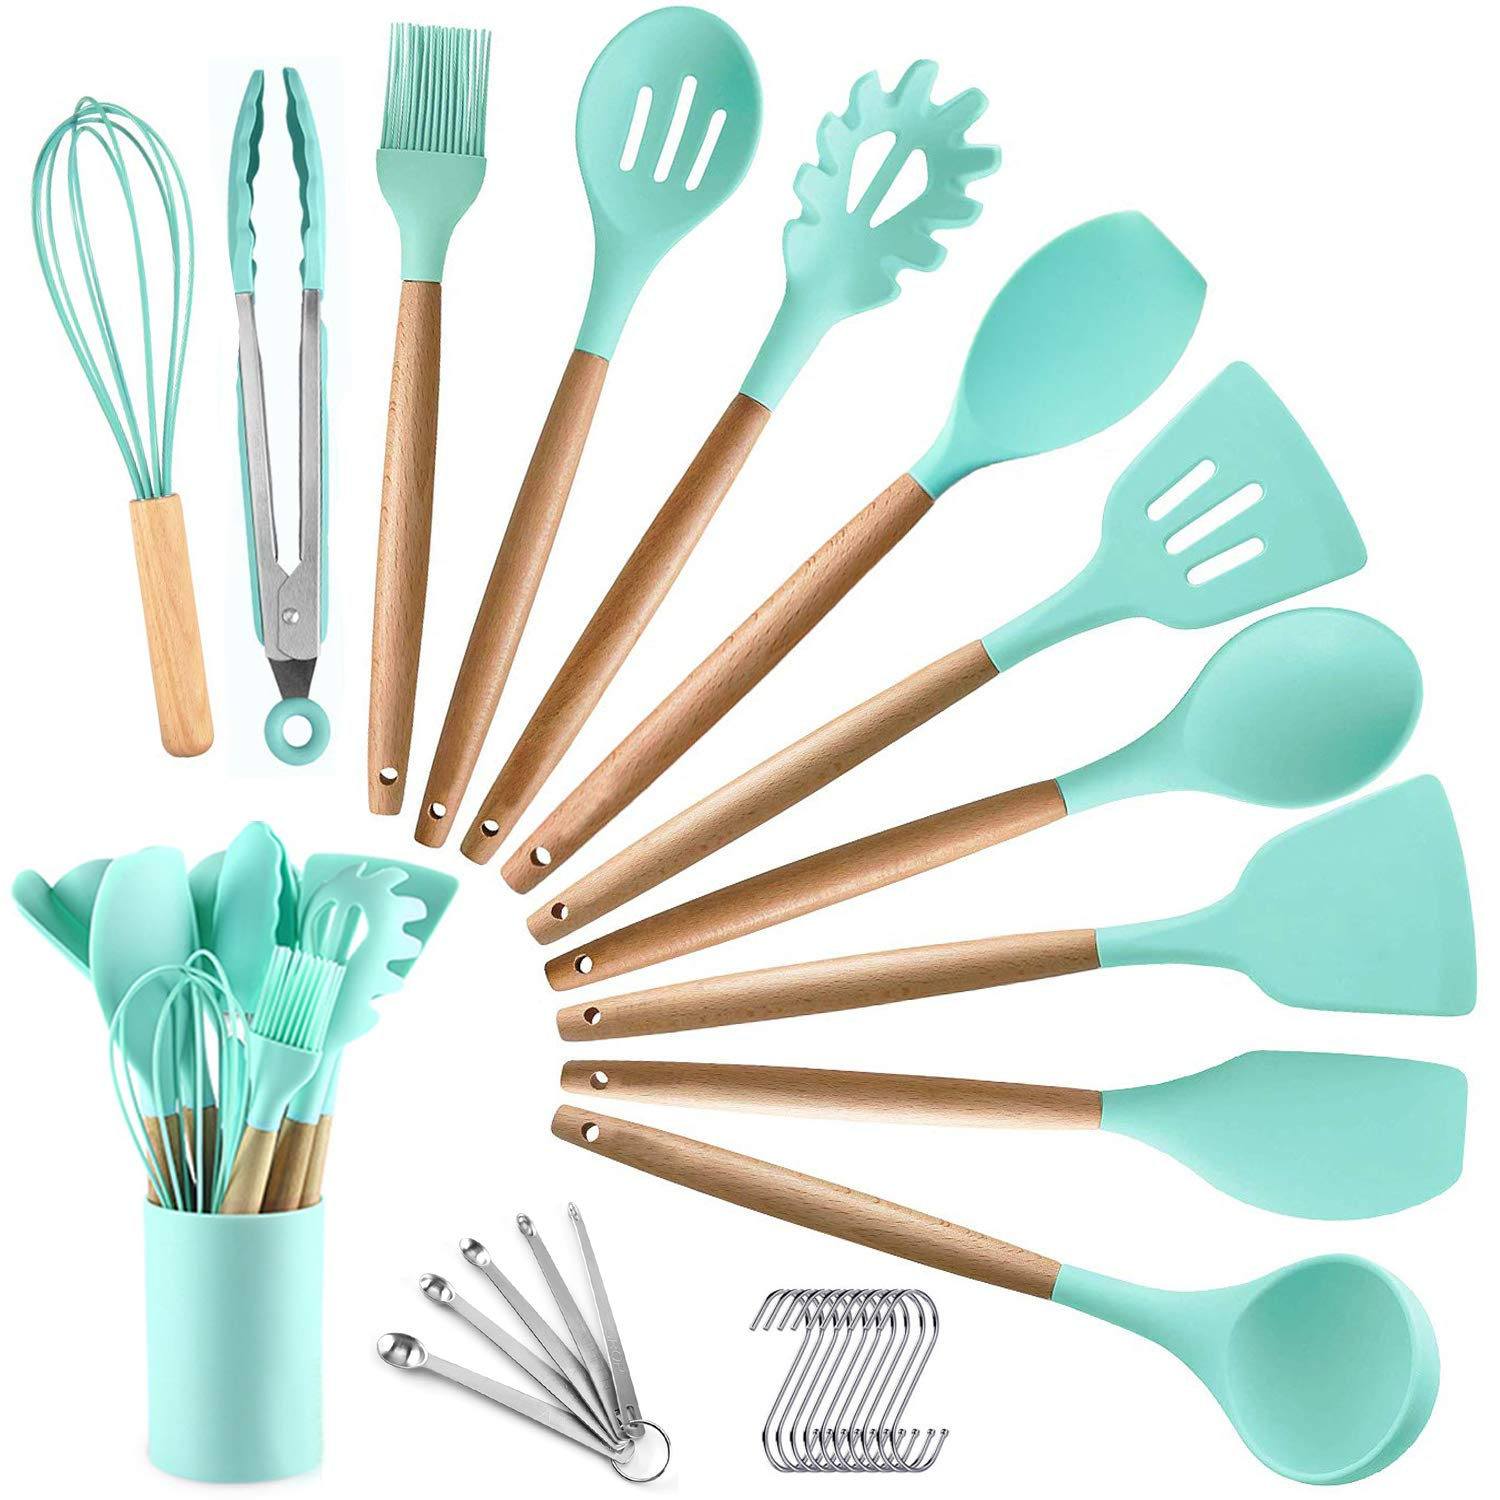 BECBOLDF 27 Kitchen Utensil Set - Silicone Cooking Utensils - Wooden Kitchen Utensils Set - Silicone Spatula Set Utensil Set - Silicone Utensils Cooking Utensil Set - Kitchen Tools Gadgets with Holde